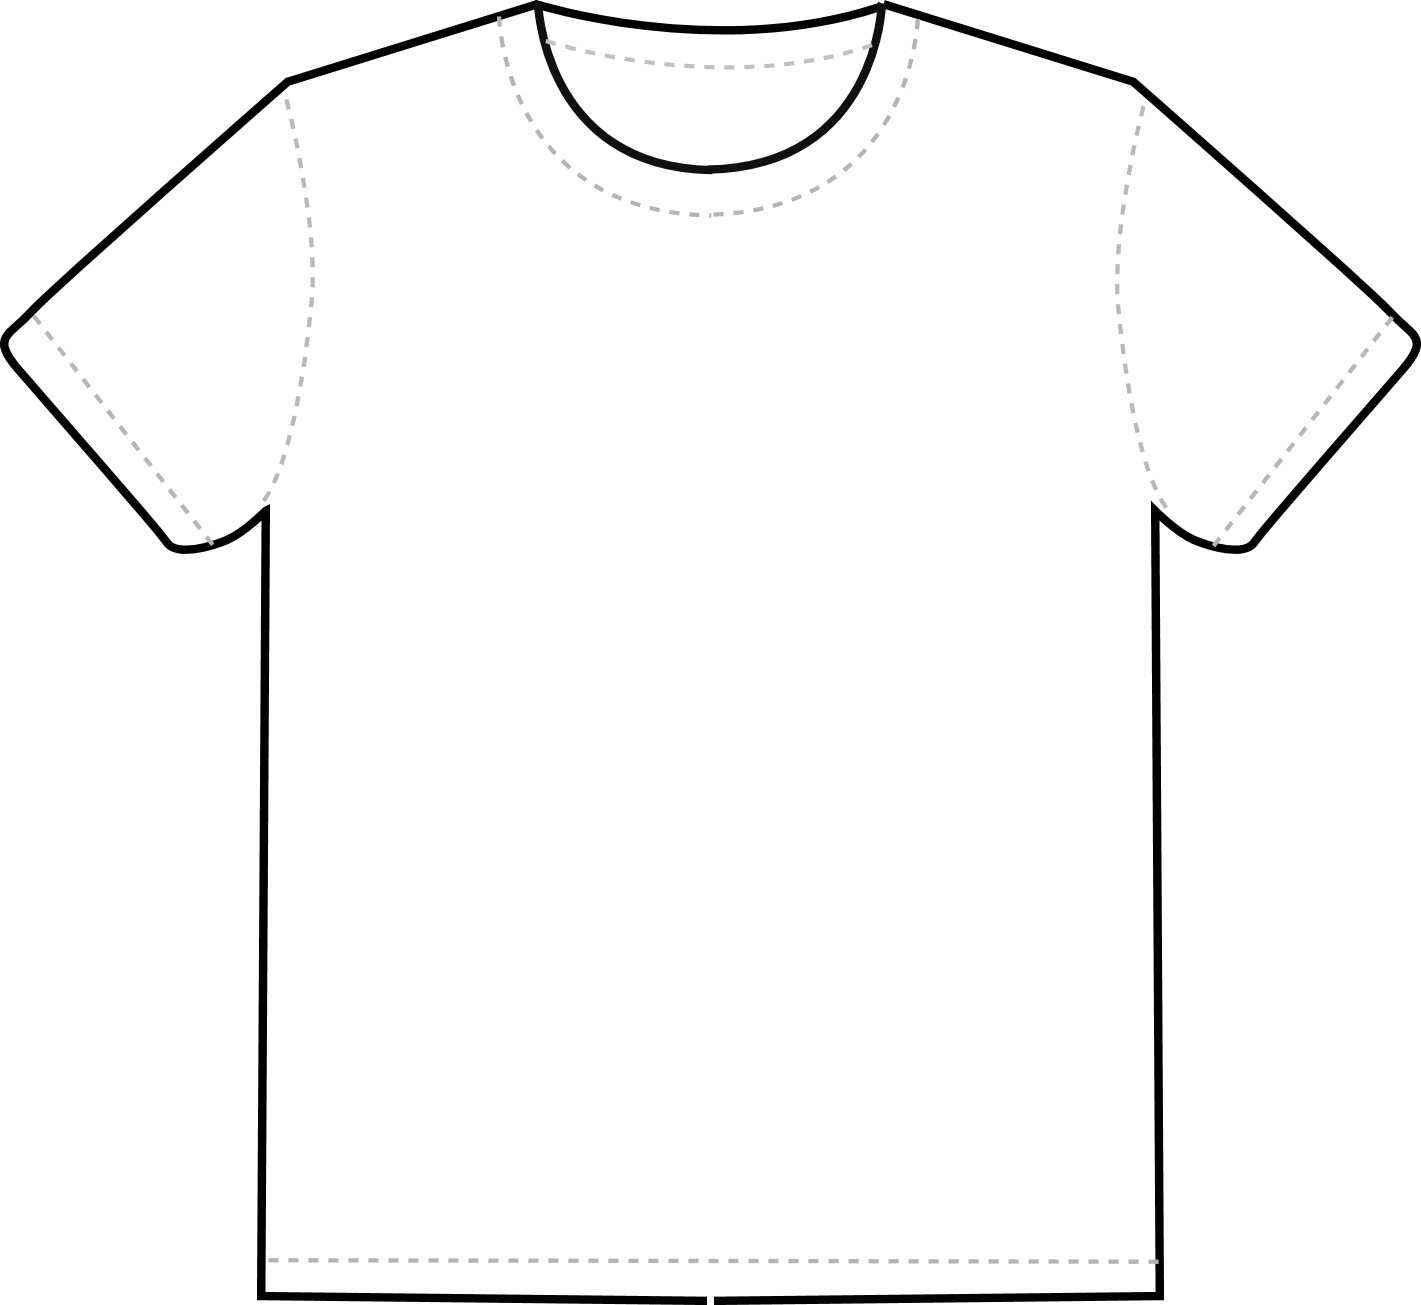 Design the t–shirt using this template to help you. It must include: